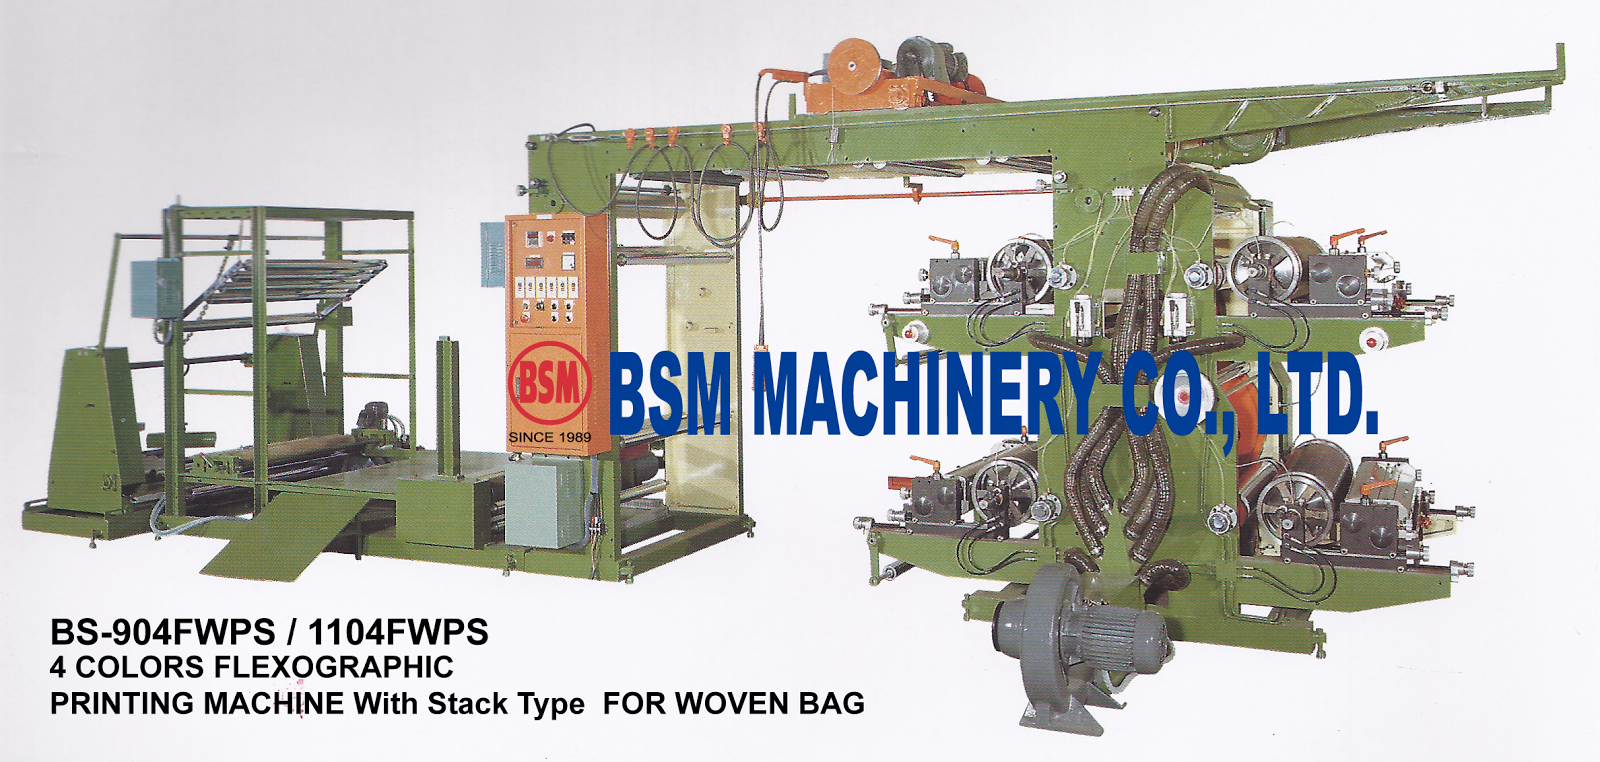 4 COLORS FLEXOGRAPHICPRINTING MACHINE With Stack Type  FOR WOVEN BAG